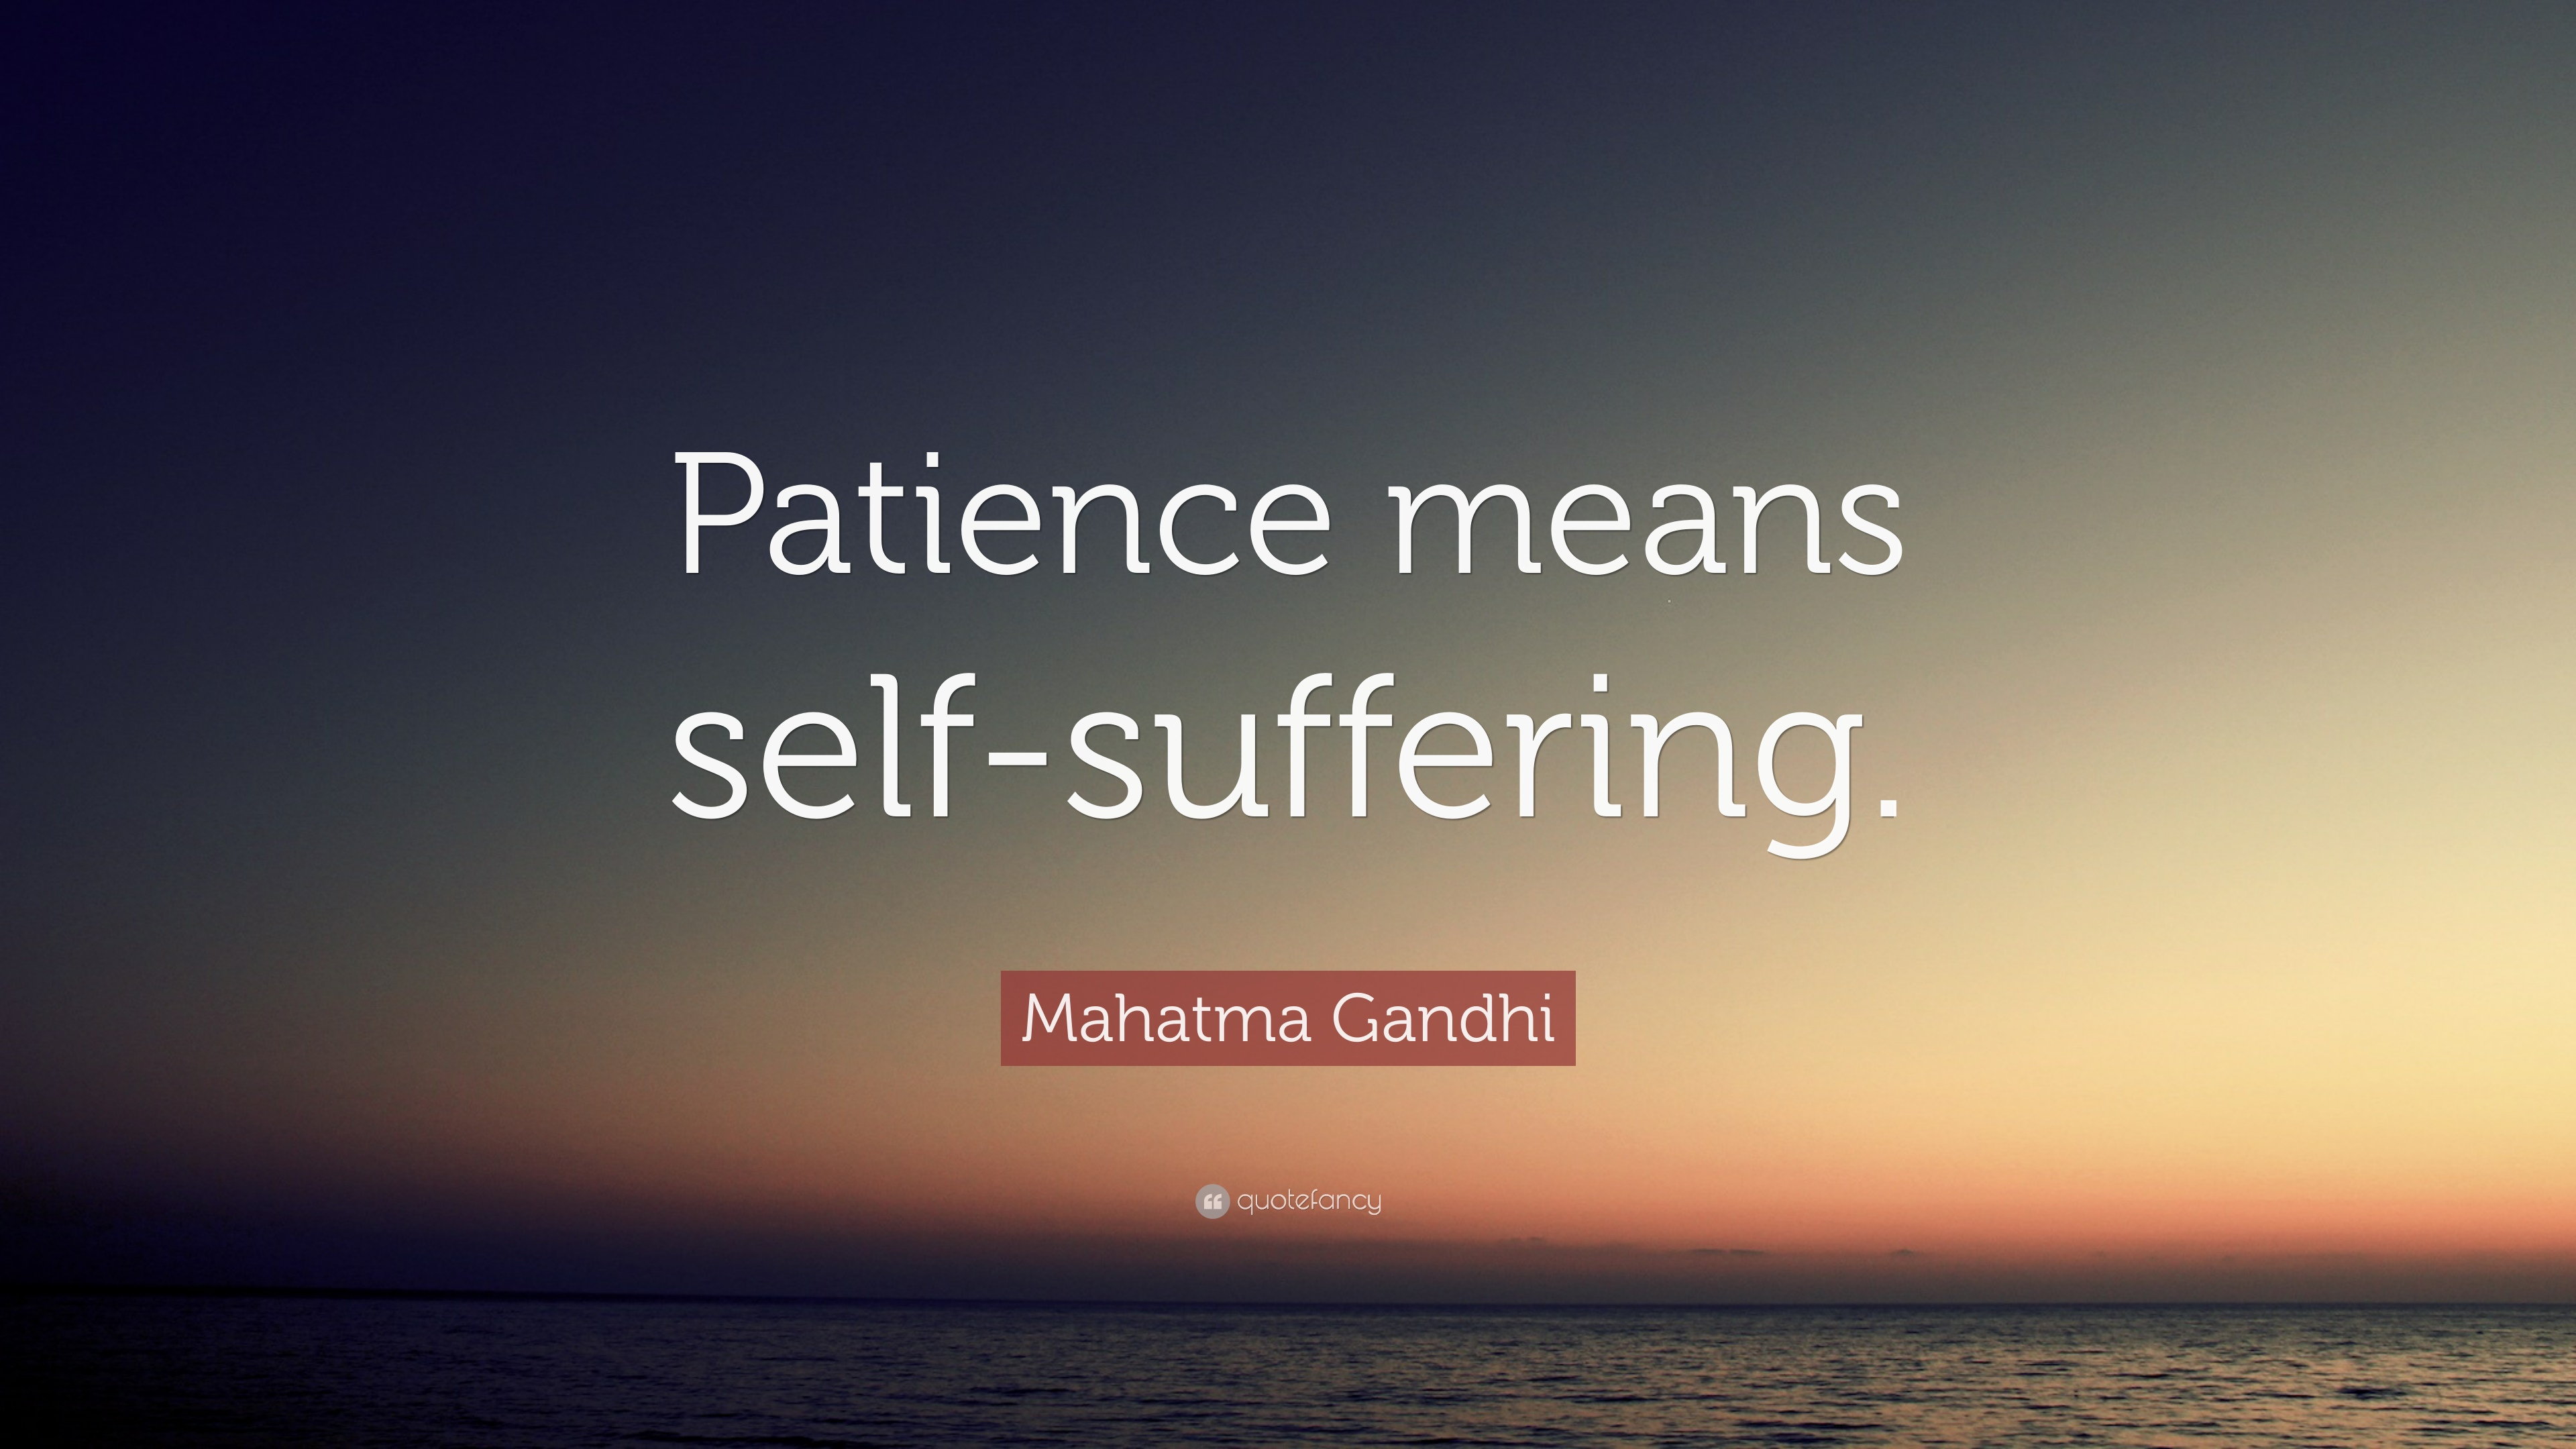 Patience Quotes (59 wallpapers) - Quotefancy